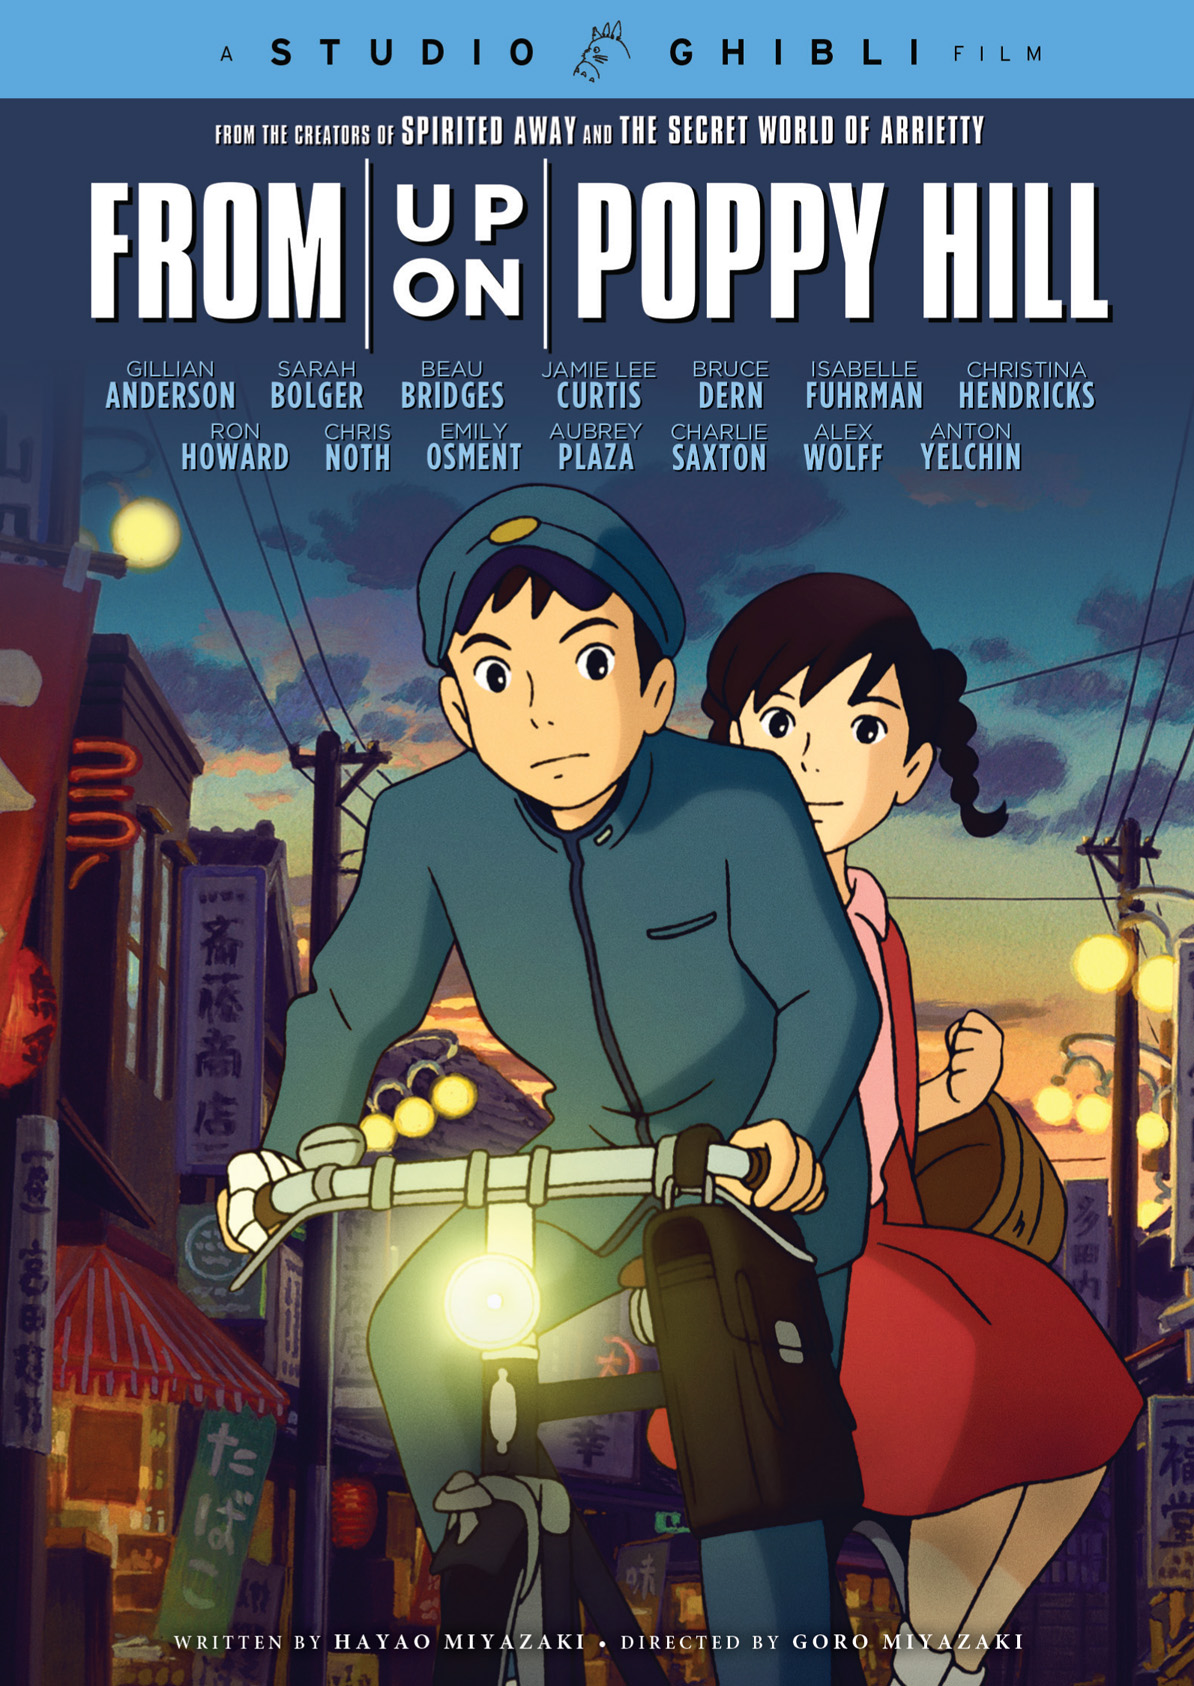 From Up on Poppy Hill - GKids - Cinedigm Entertainment